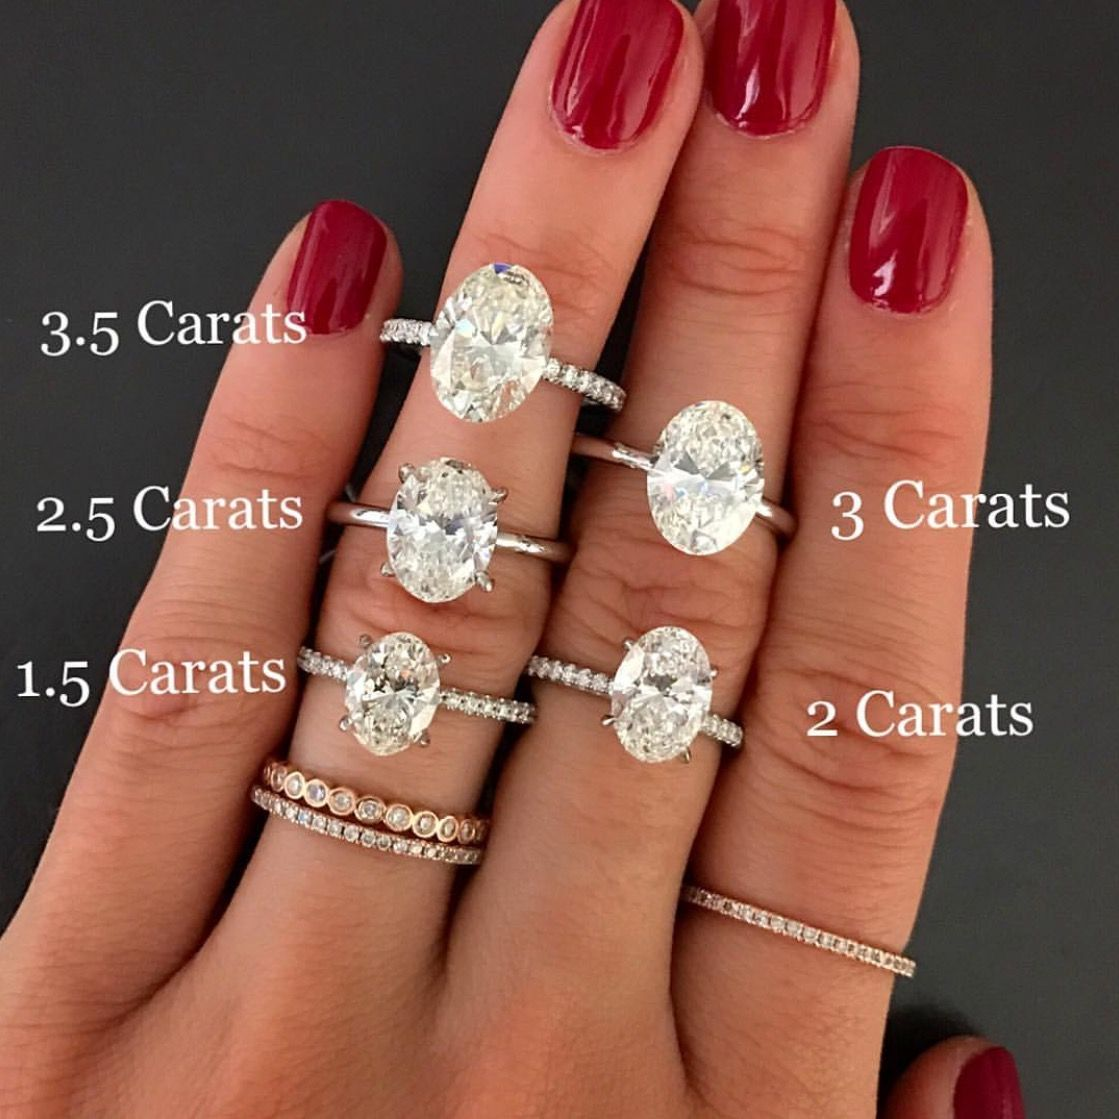 The 3 Carats One Wedding Rings Oval Perfect Engagement Ring Best Engagement Rings